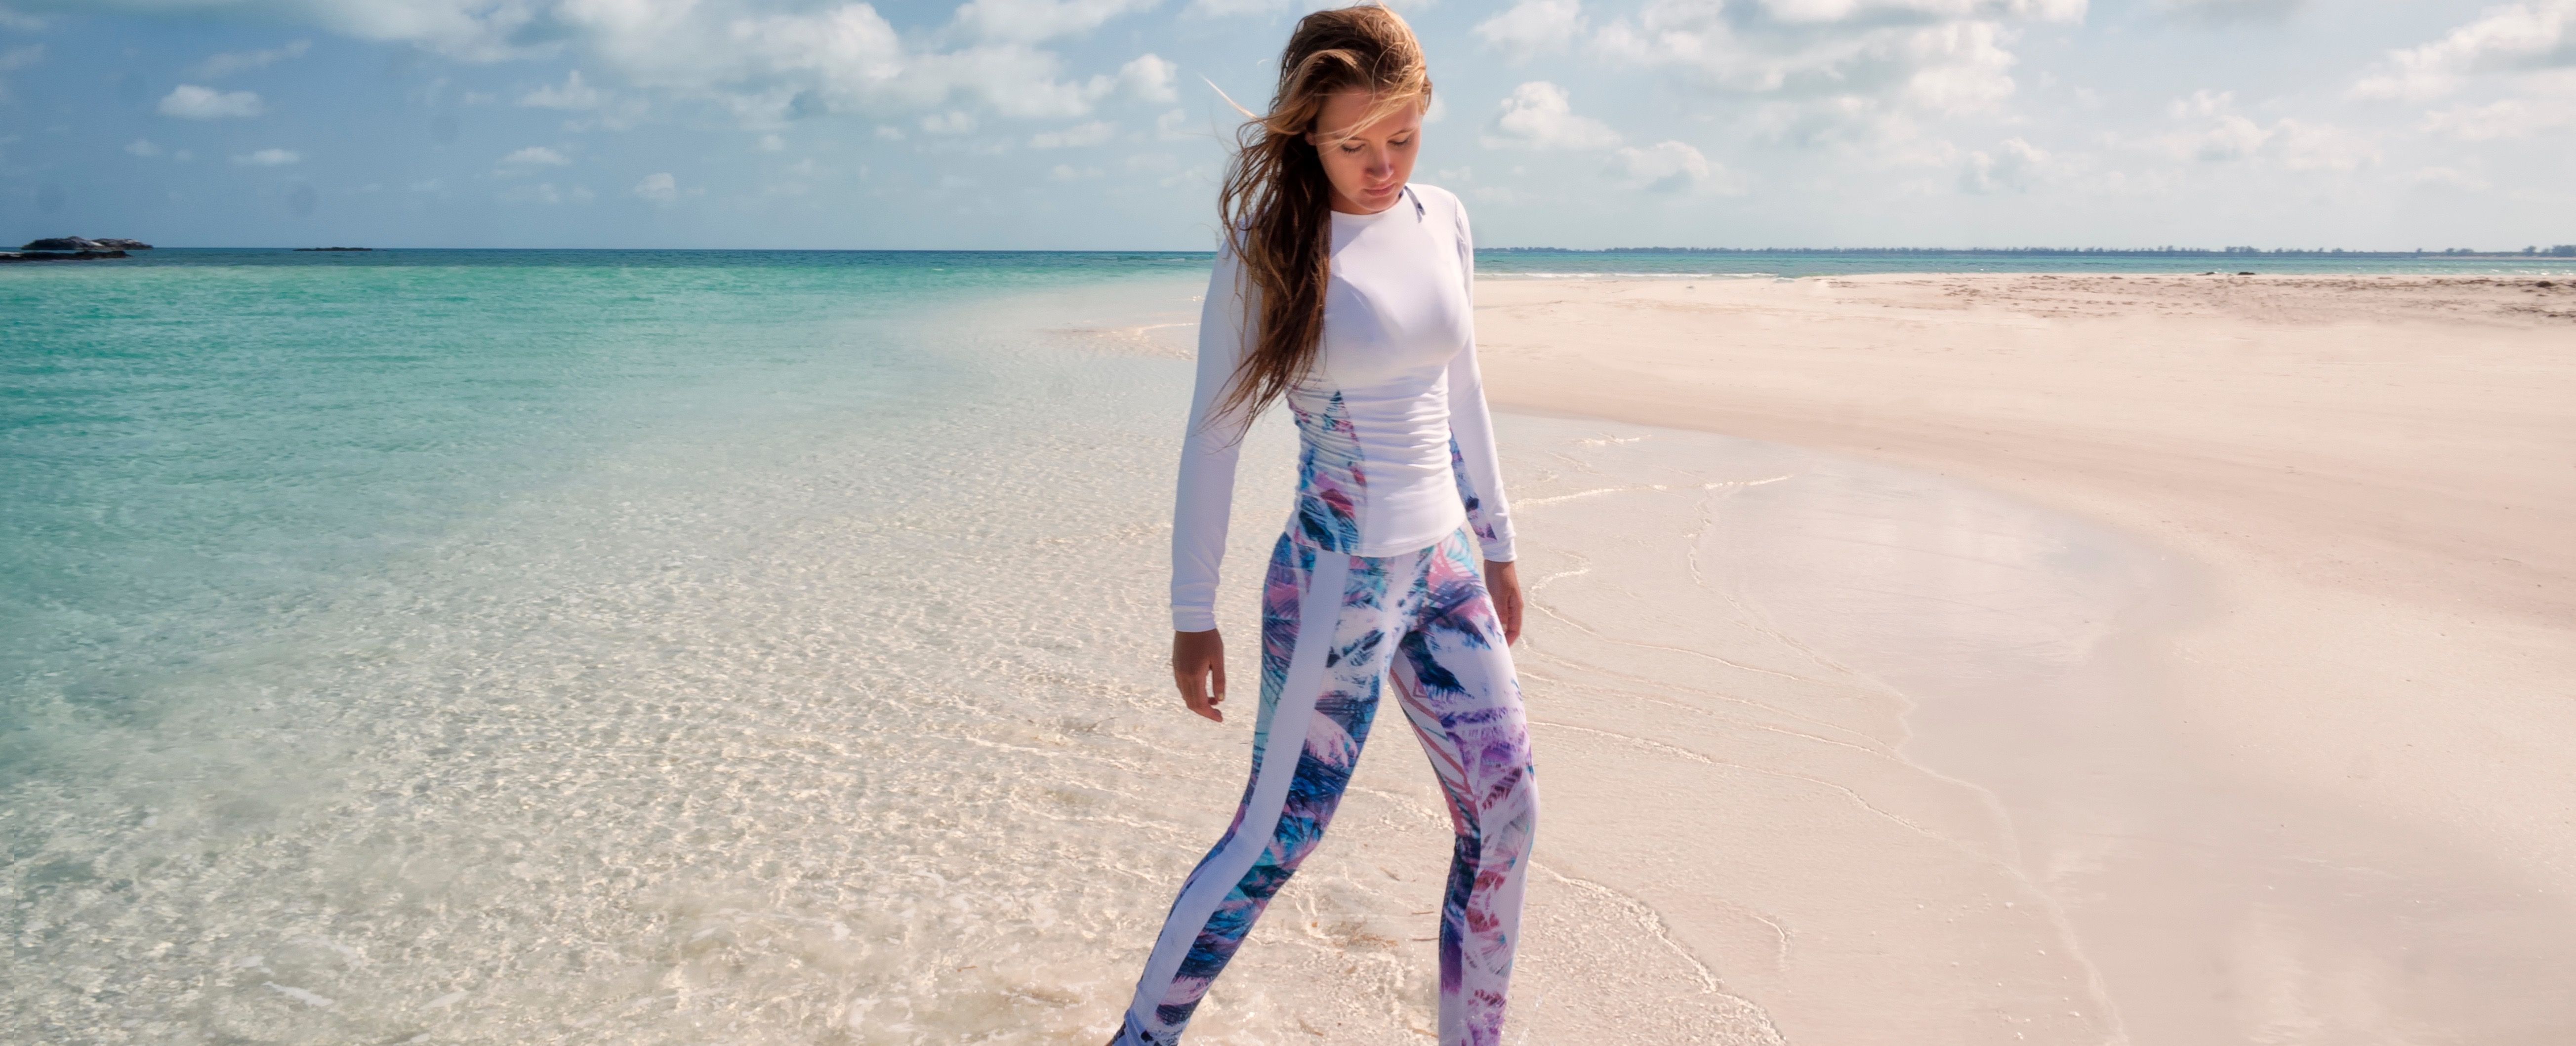 To Dive For dive/yoga leggings and rashie/sports top.